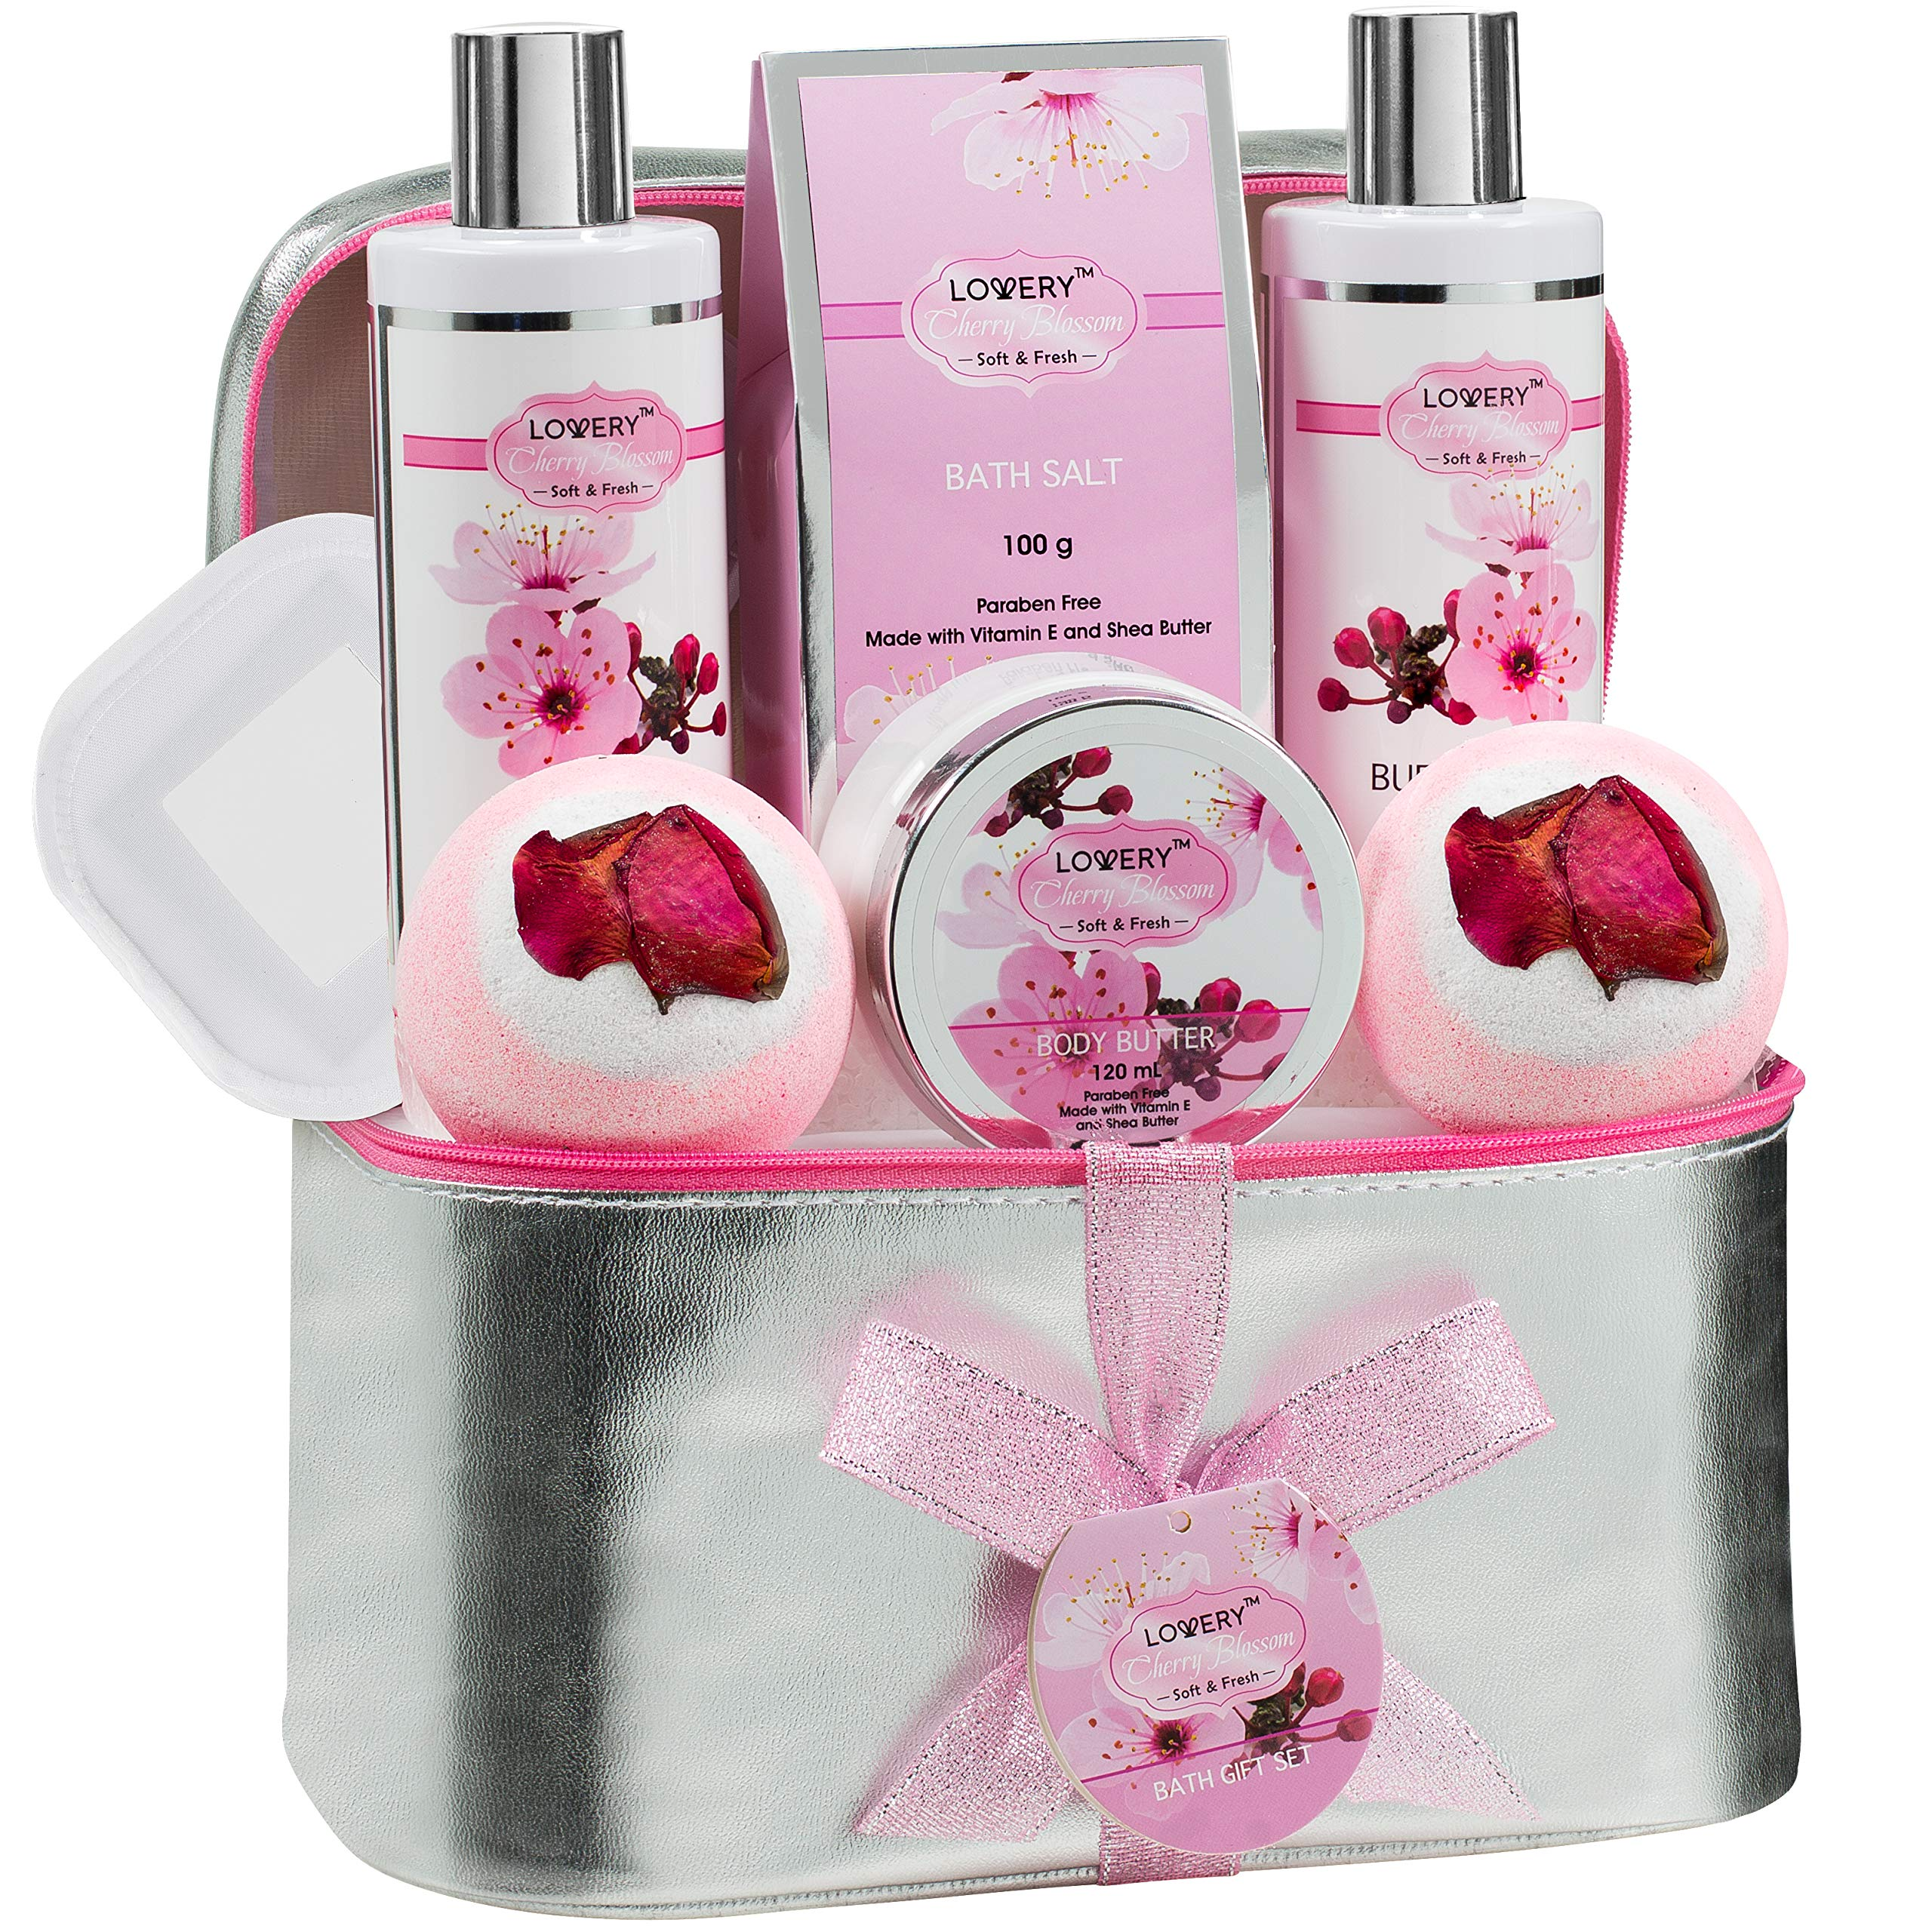 Easter Basket Bath and Body Gift Basket For Women – Cherry Blossom Home Spa Set with Fragrant Lotions, 2 Extra Large Bath Bombs, Mirror and Silver Reusable Travel Cosmetics Bag and More